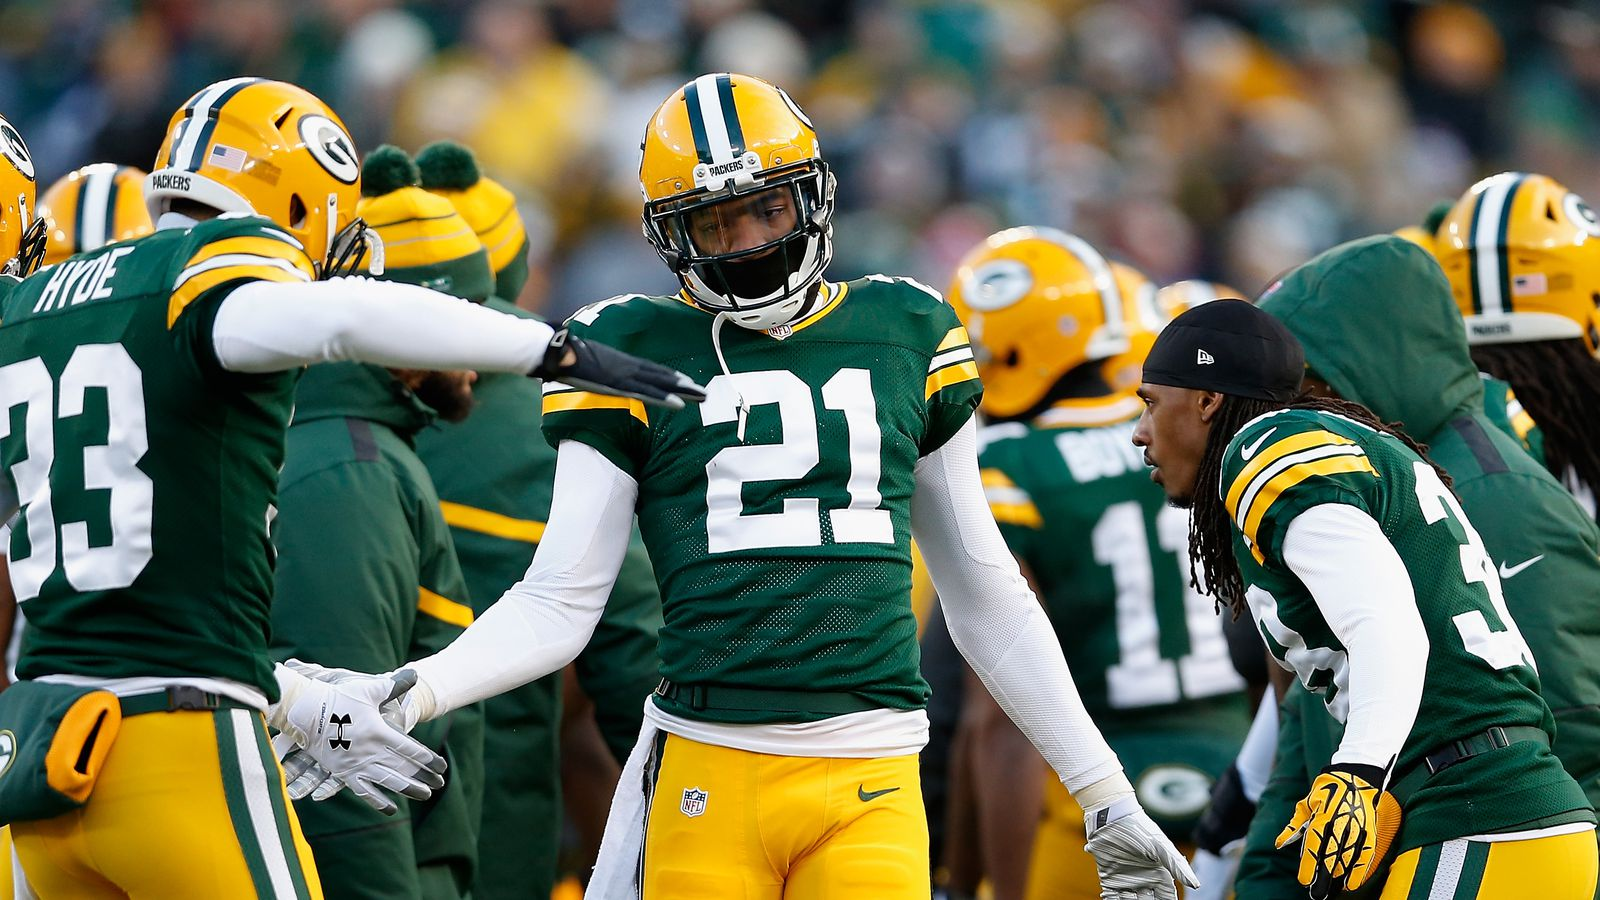 822817b0c All about Cheese Curds Daily Green Bay Packers News And Links ...